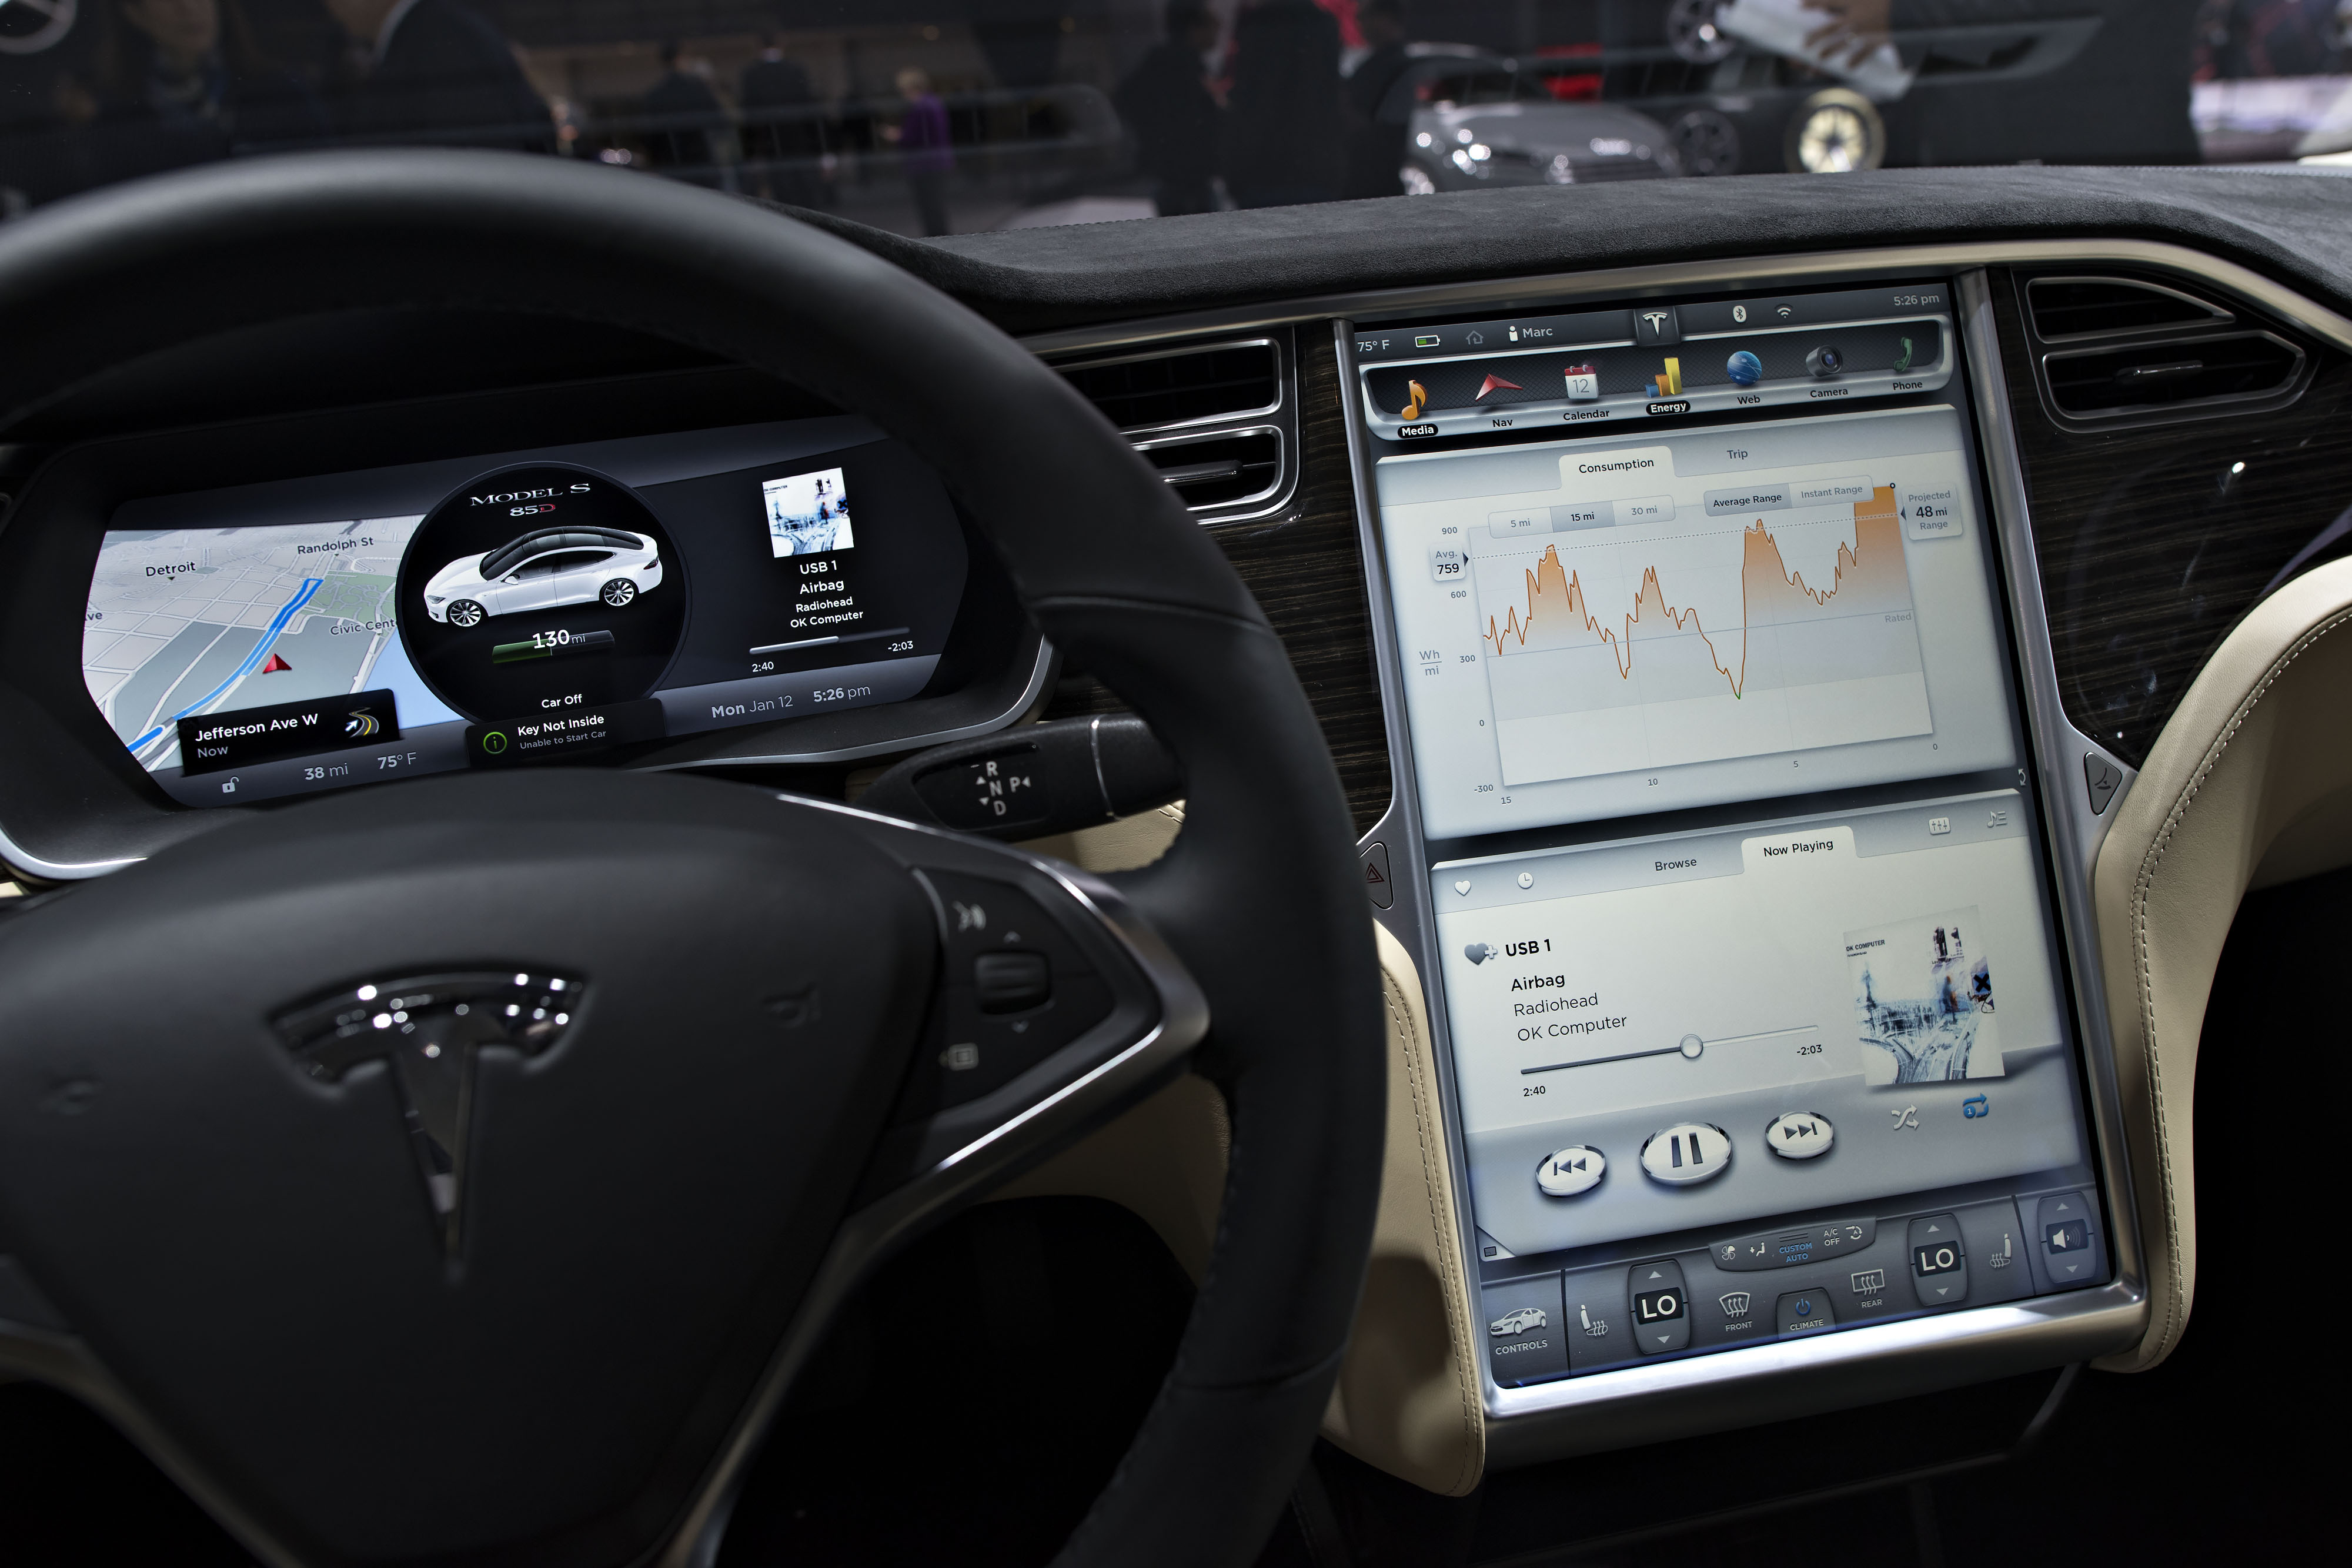 The dashboard of a Tesla Motors Inc. Model S P85 vehicle is displayed at the 2015 North American International Auto Show (NAIAS) in Detroit, Michigan, U.S., on Monday, Jan. 12, 2015.